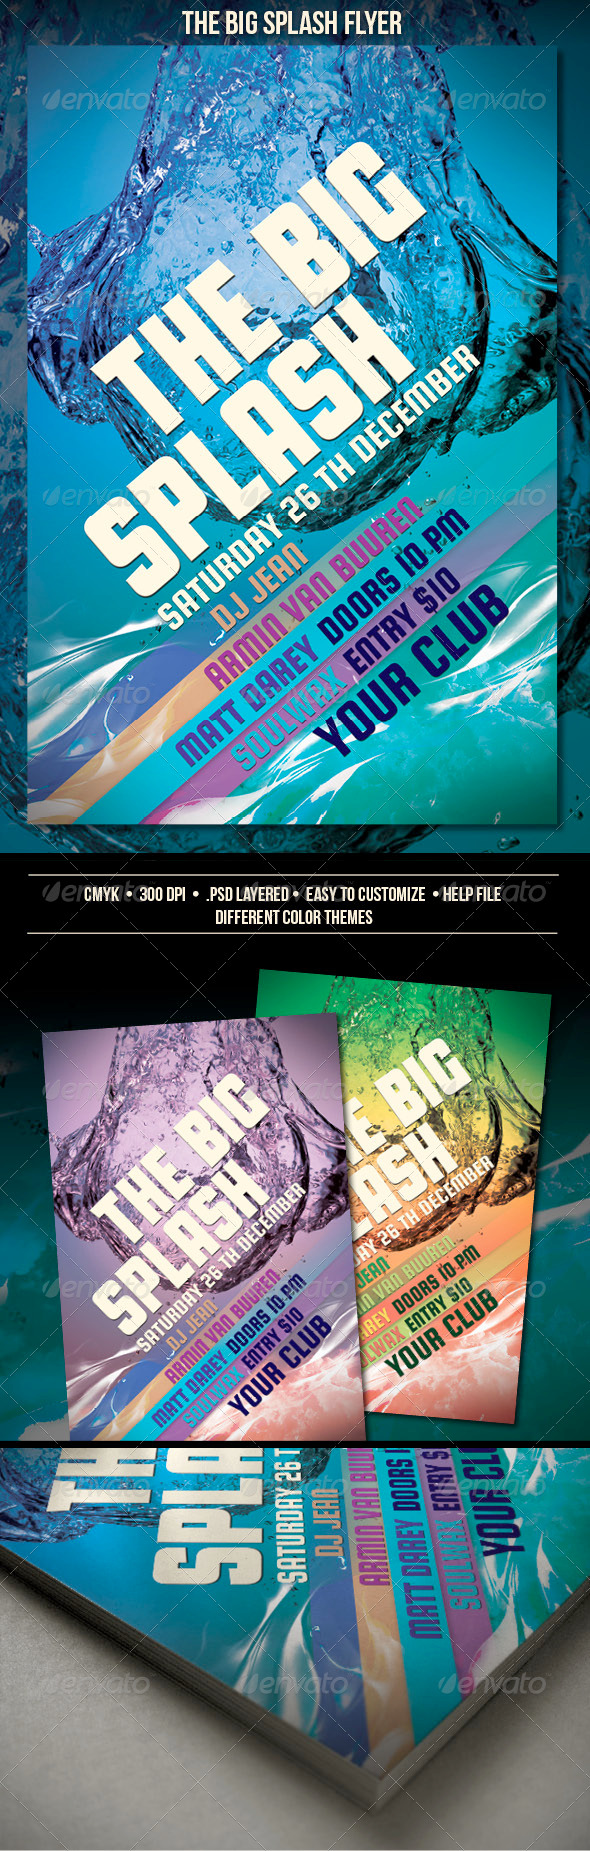 GraphicRiver The Big Splash Flyer 3285283